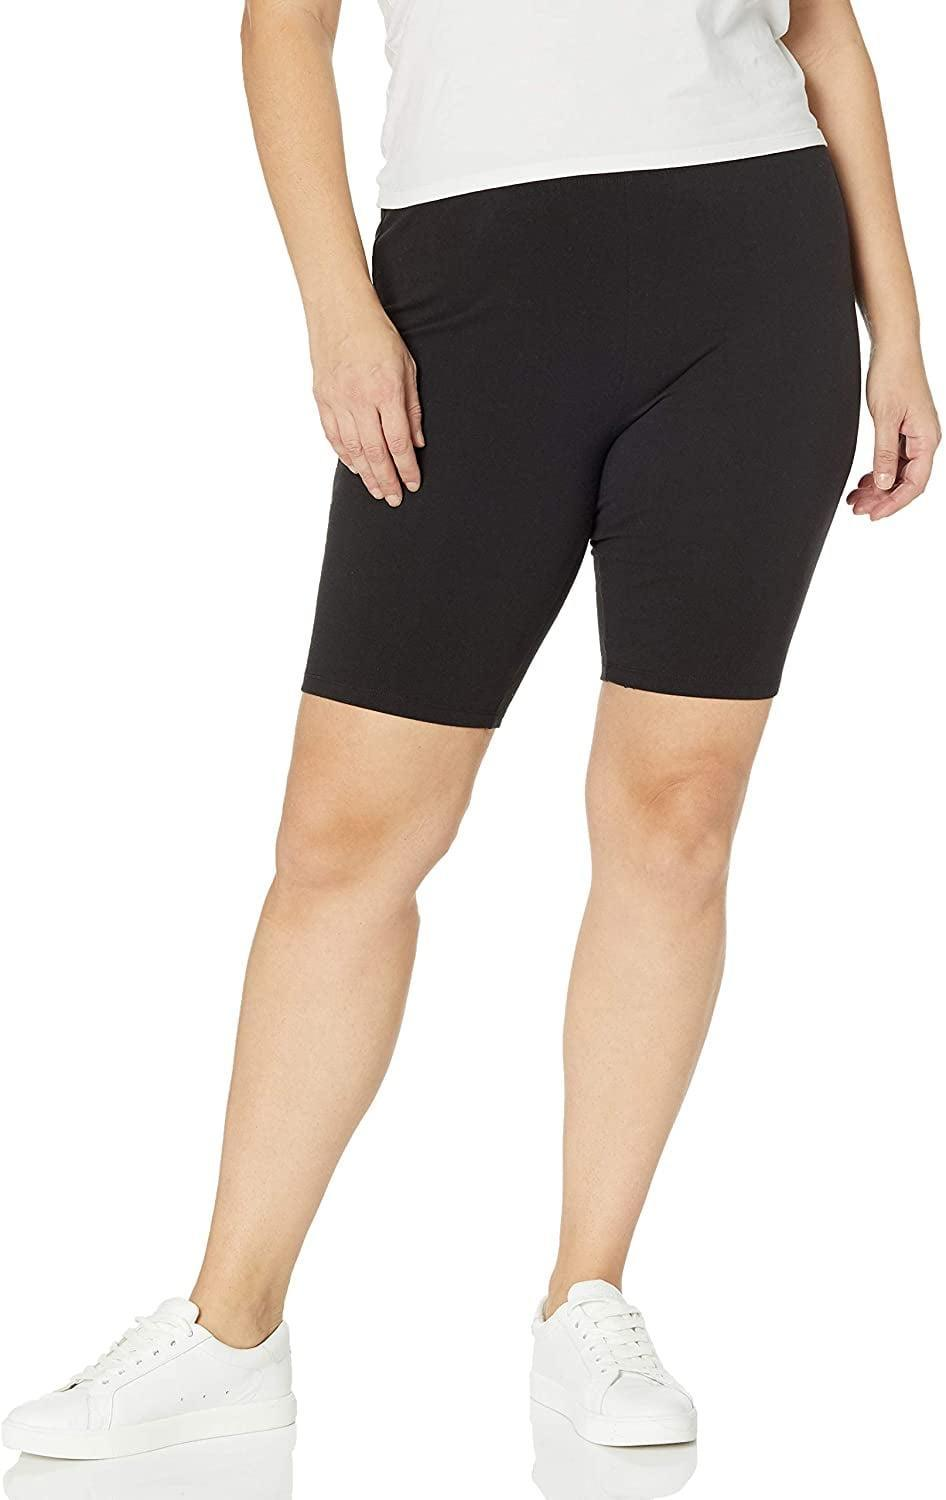 <p>You can't go wrong with these <span>Just My Size Stretch Jersey Bike Shorts</span> ($10, originally $12), especially if you have curves.</p>